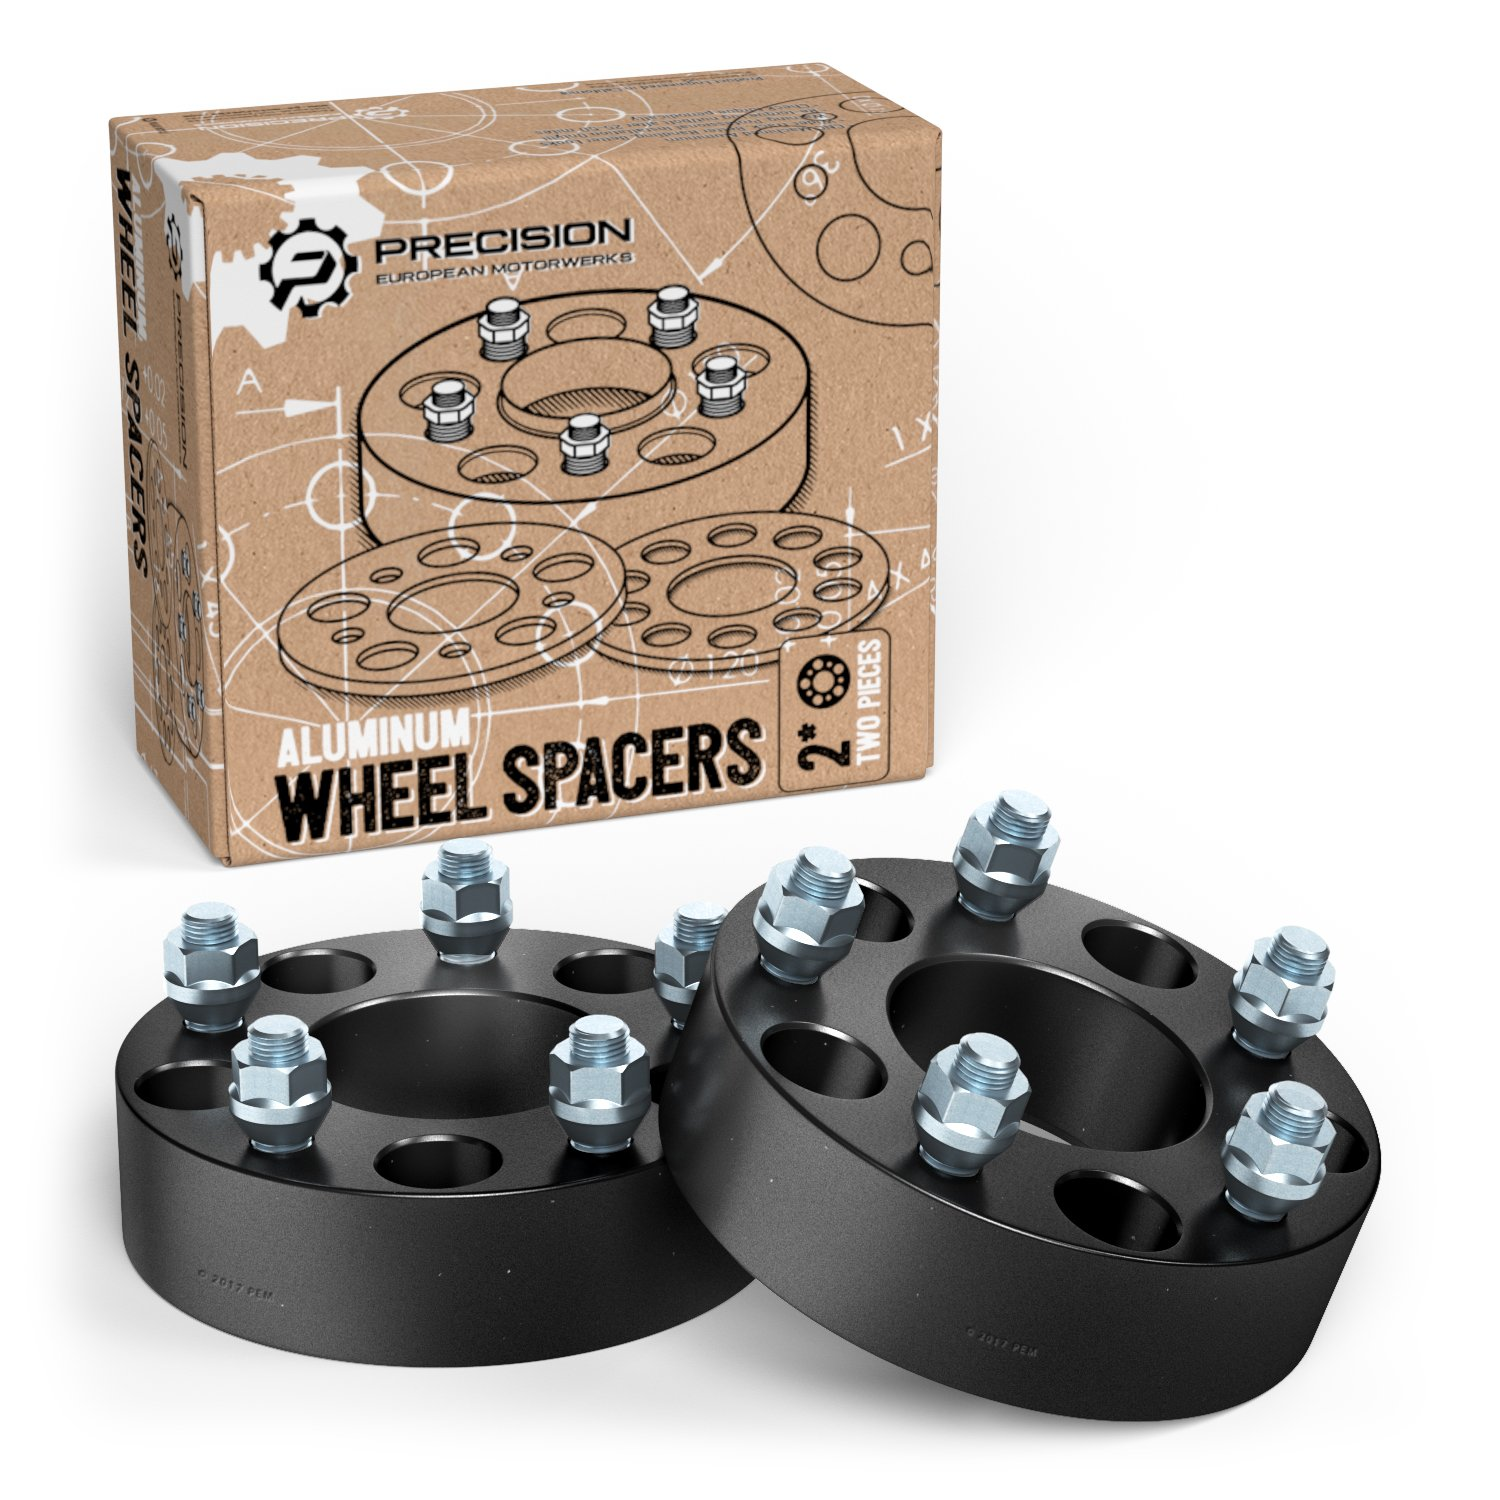 2pc 2.5' Thick 5x4.75 Hubcentric Wheel Spacers No Lip (12x1.5 Studs) for Chevy Blazer Camaro Corvette S10 GMC S15 Jimmy Pontiac Trans Am Firebird Cadillac XLR Silver 5x120.65 Precision European Motorwerks